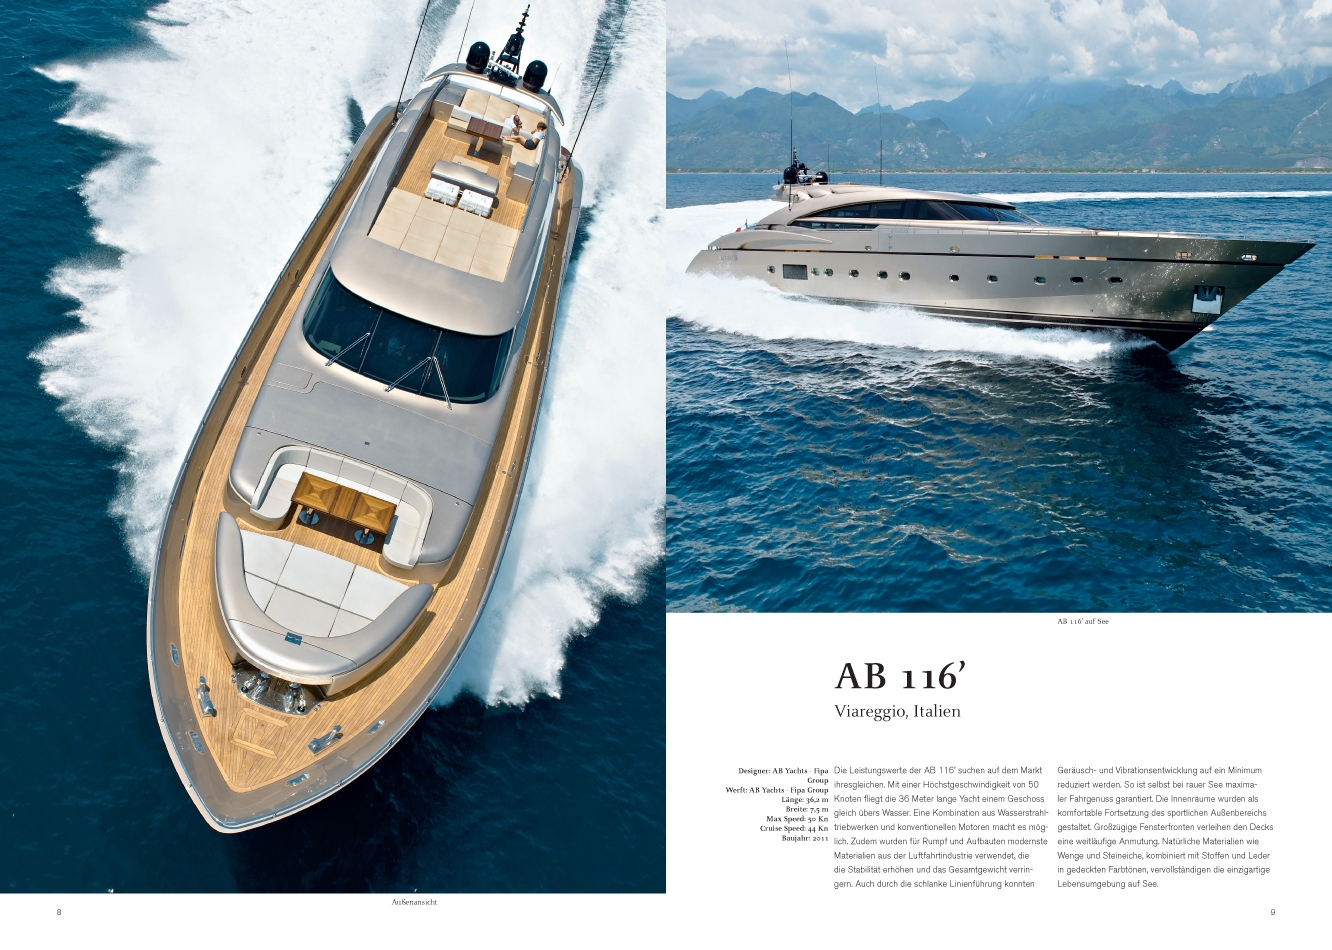 super yachten: innenarchitektur | braun publishing, Innenarchitektur ideen